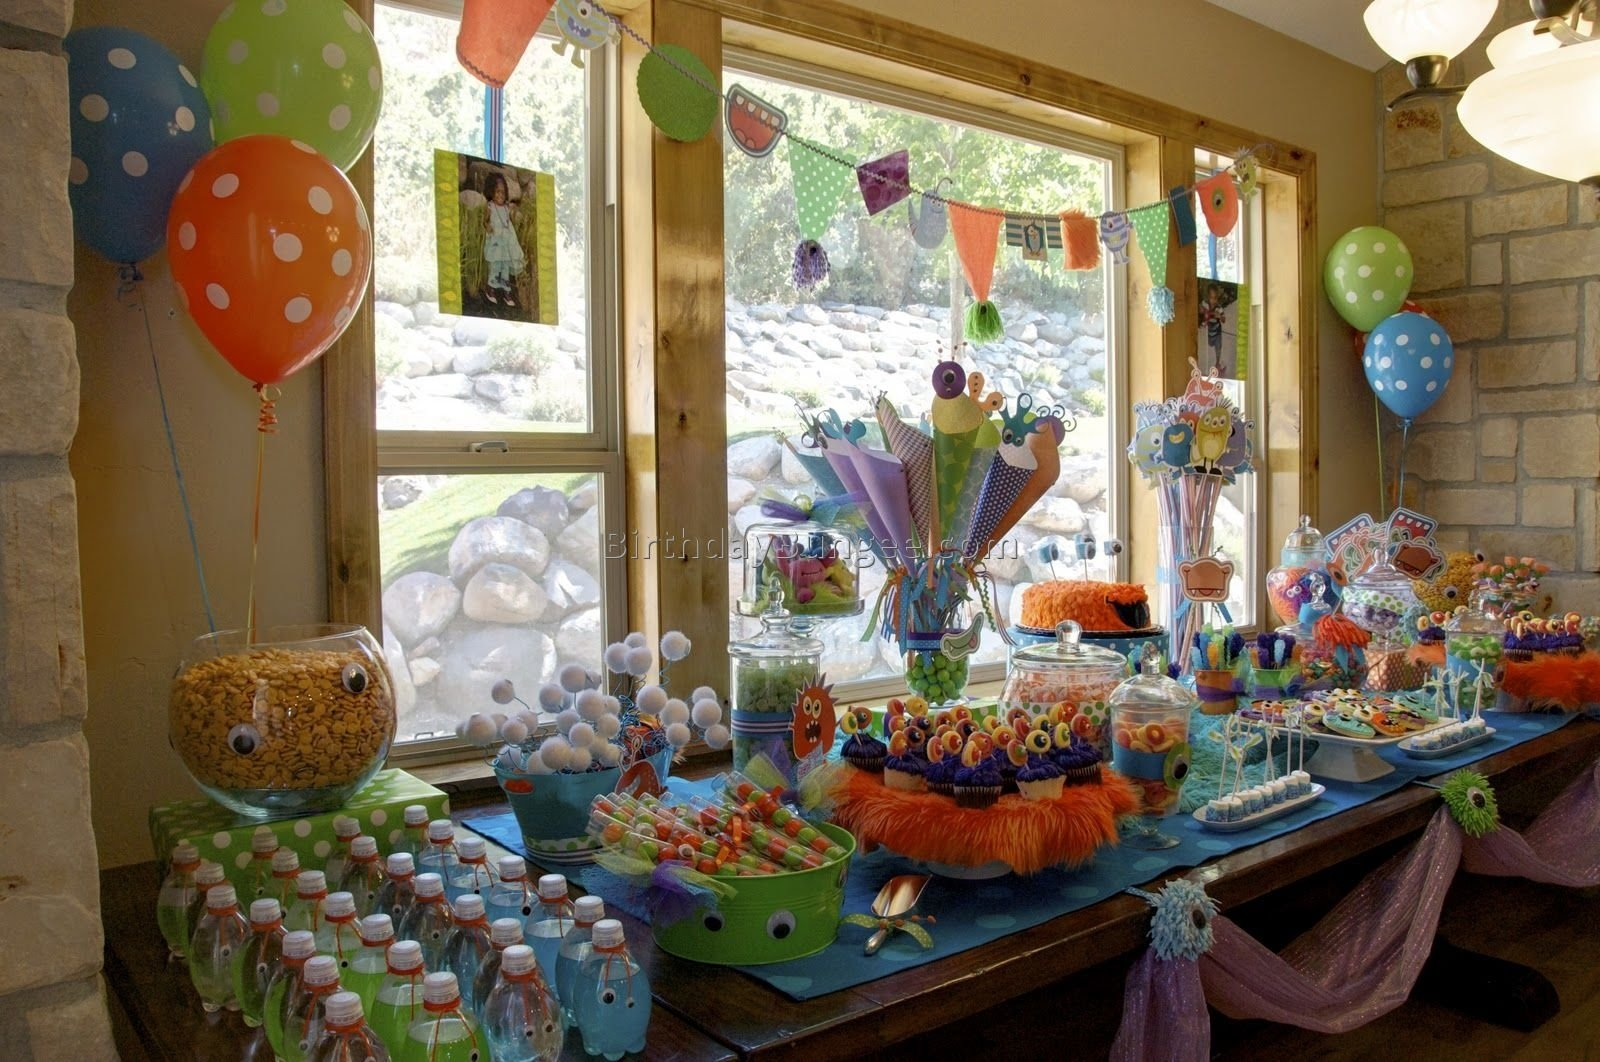 10 Best Birthday Ideas For A 2 Year Old Boy Themes 6